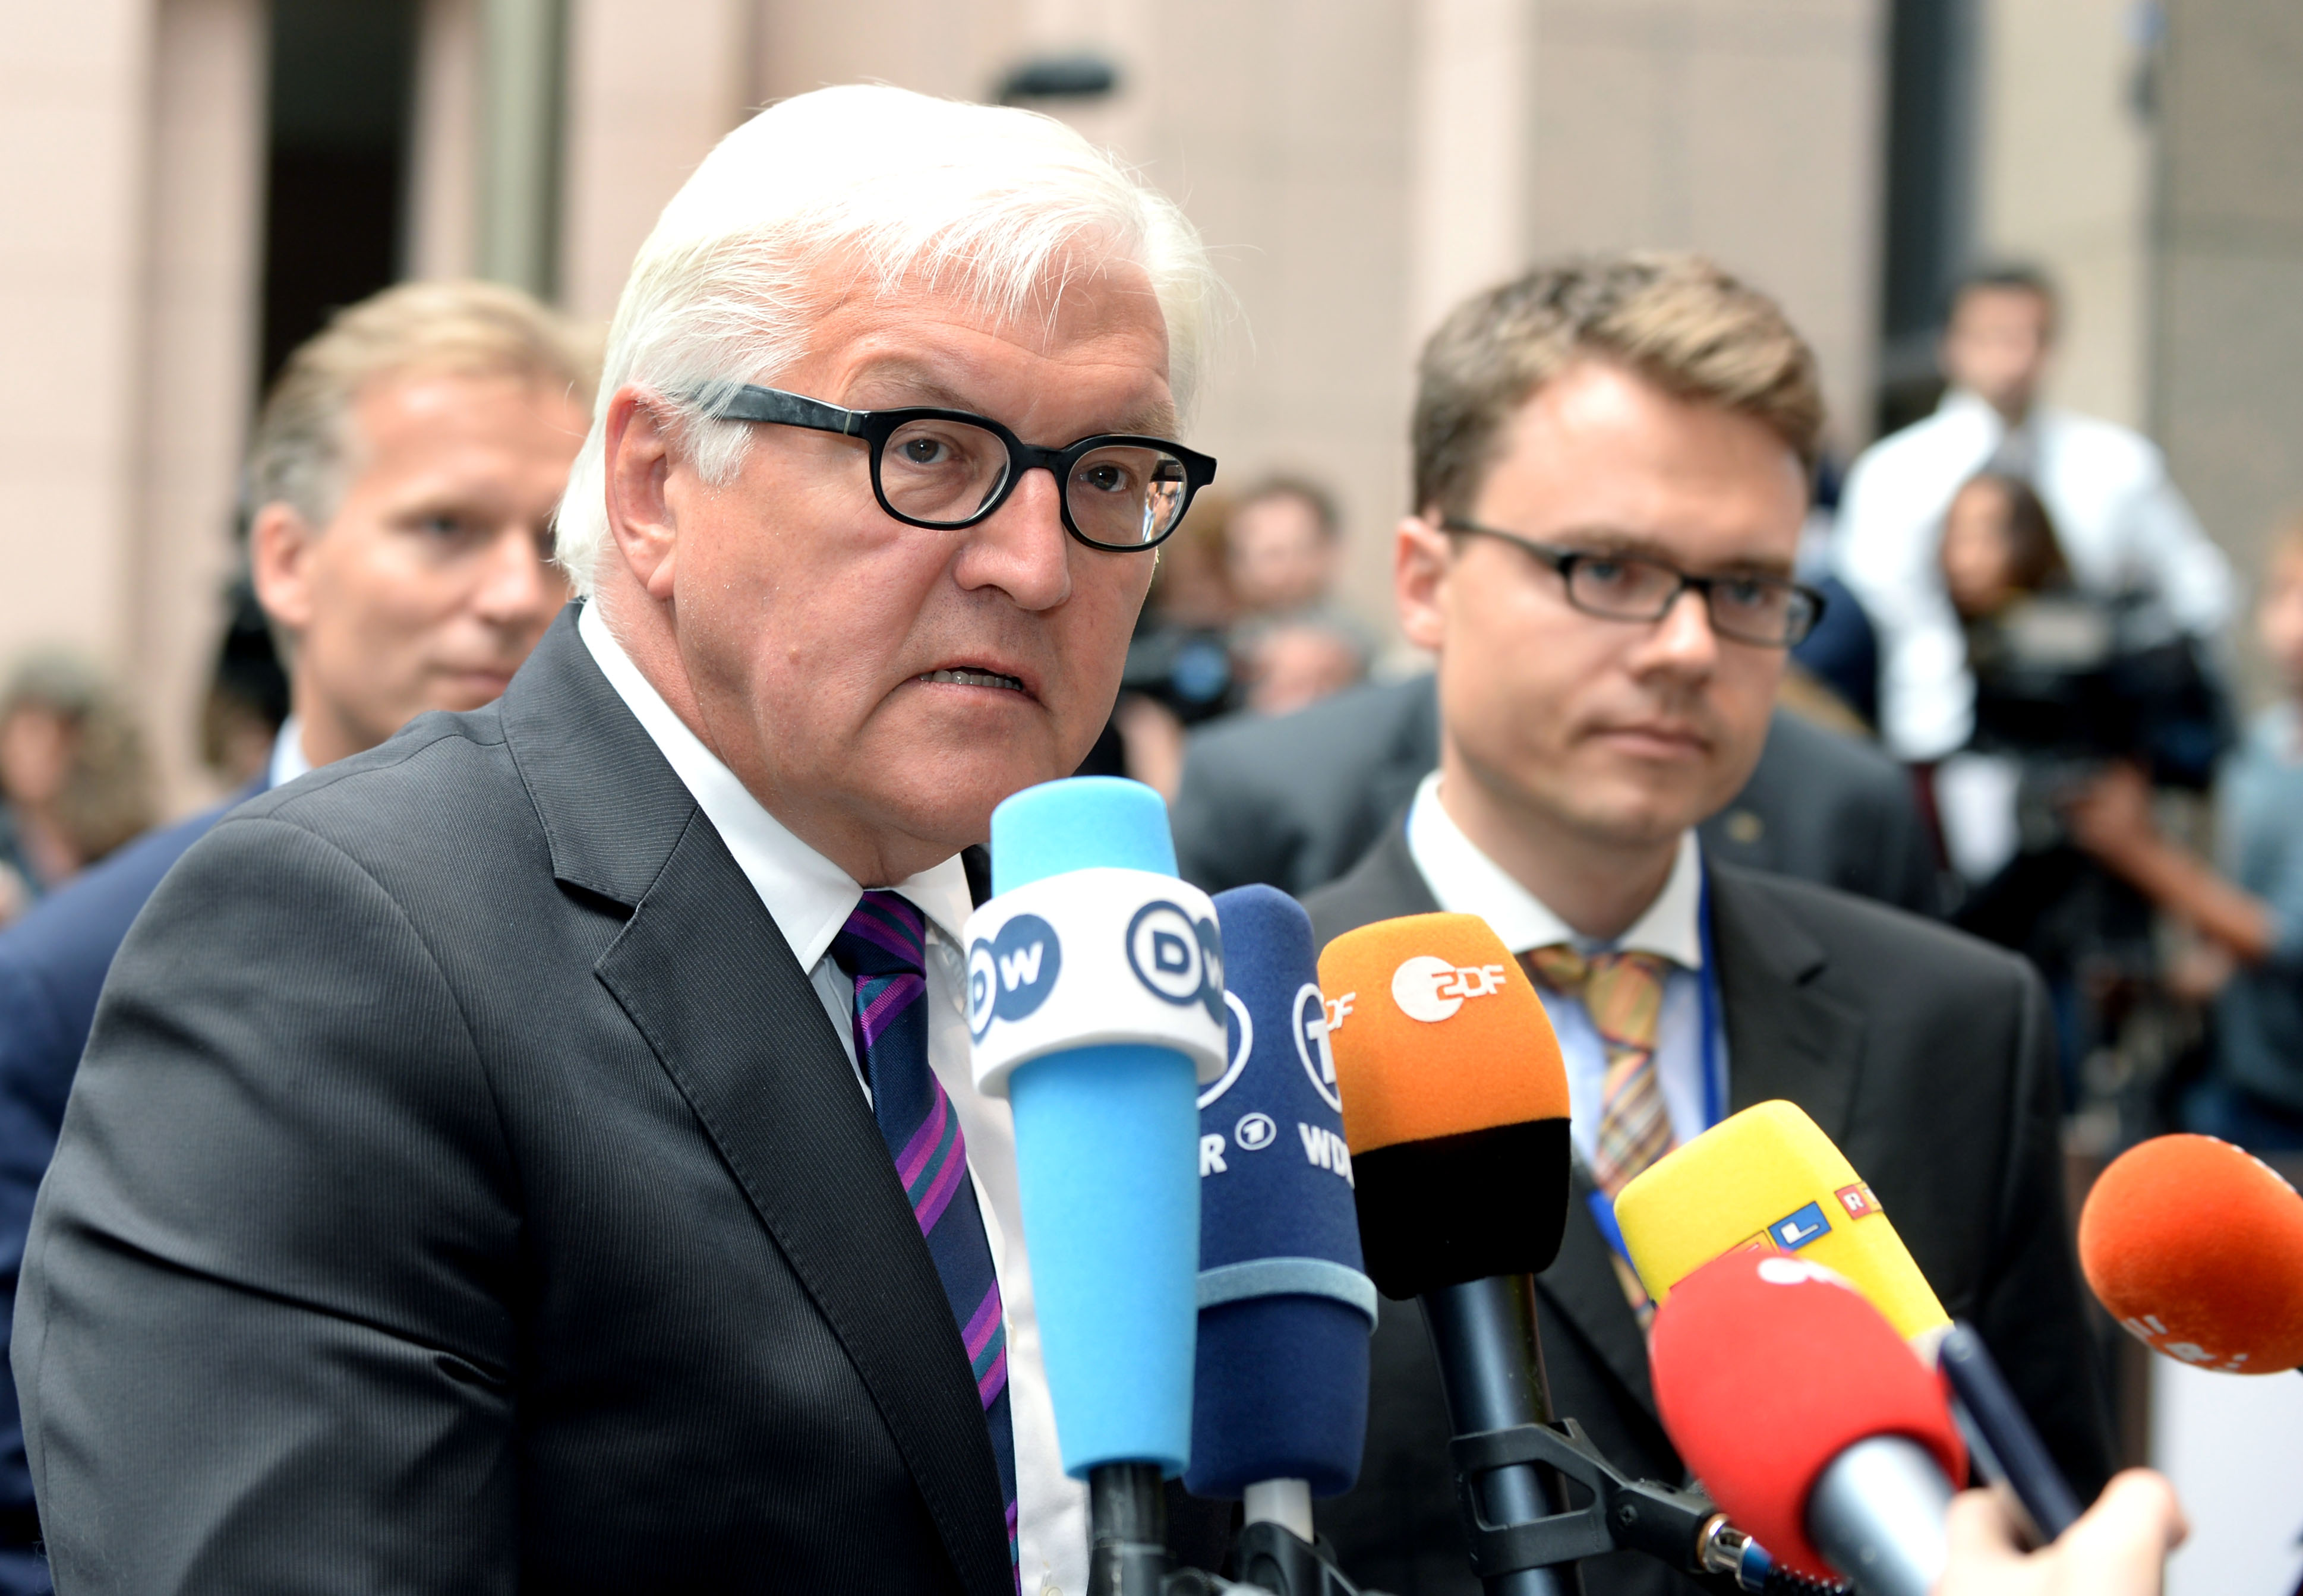 German Foreign Minister Frank-Walter Steinmeier. [The Council of European Union]